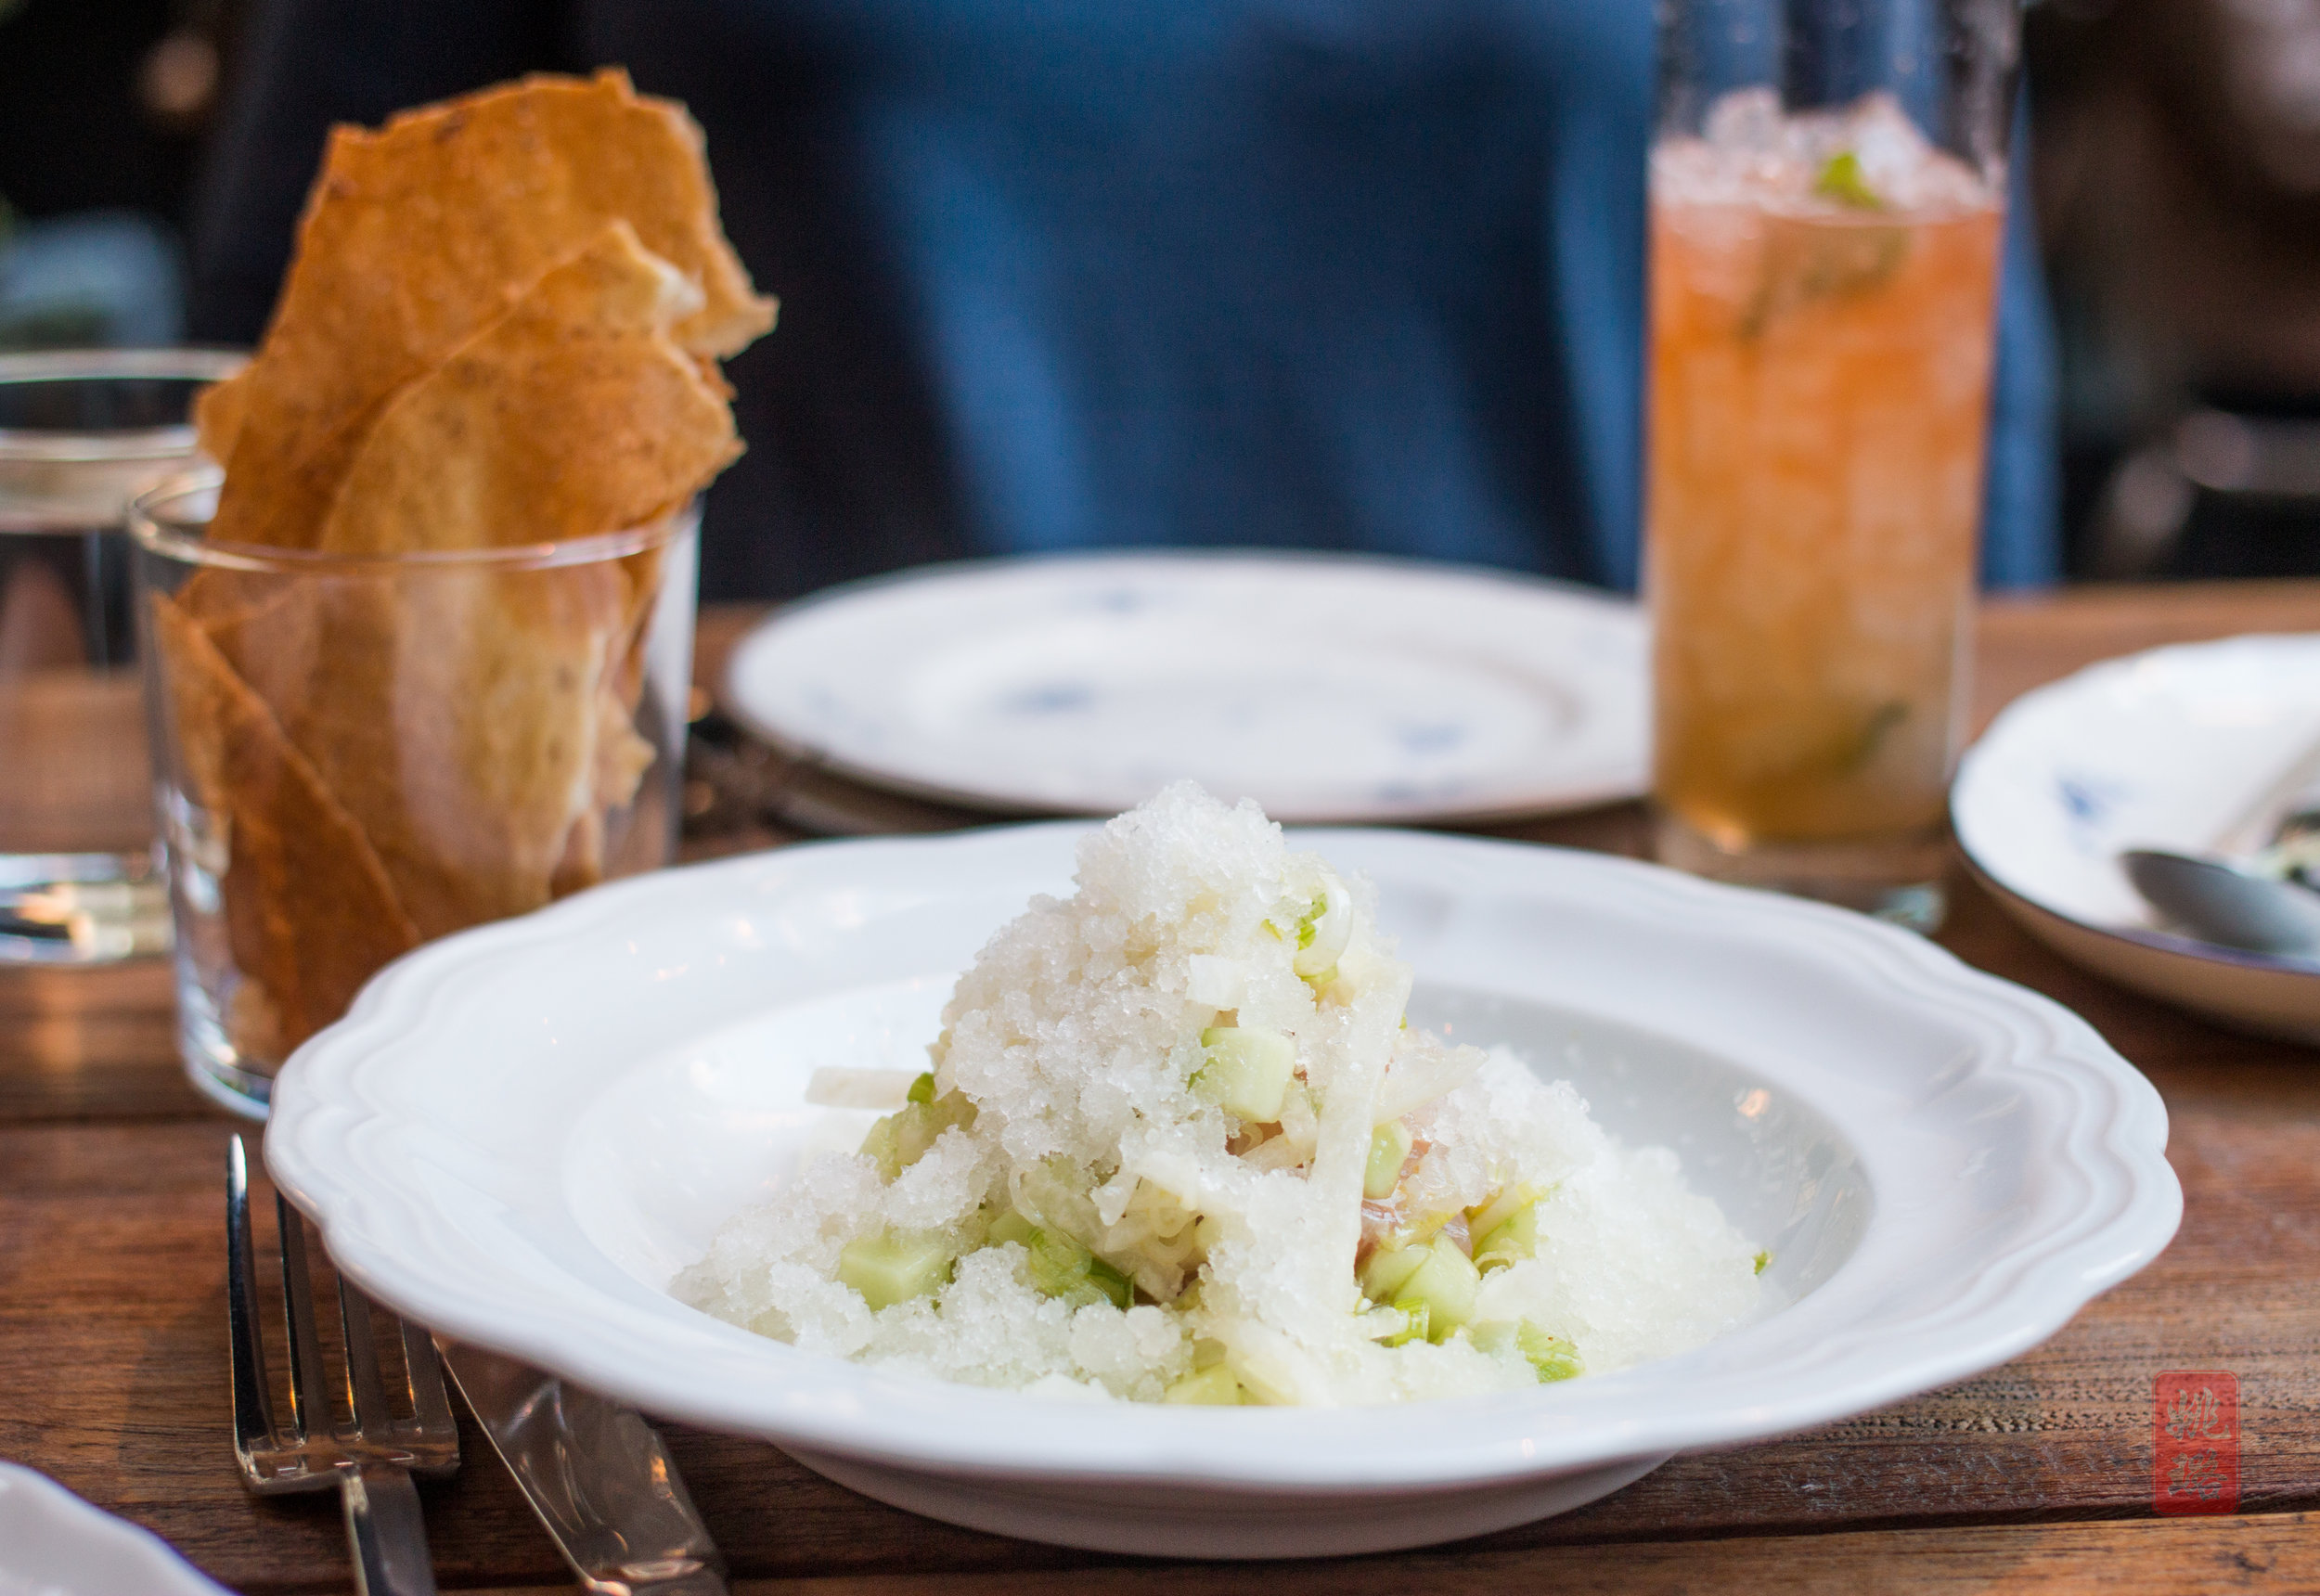 Red snapper ceviche with avocado, jicama, cucumber, and lime